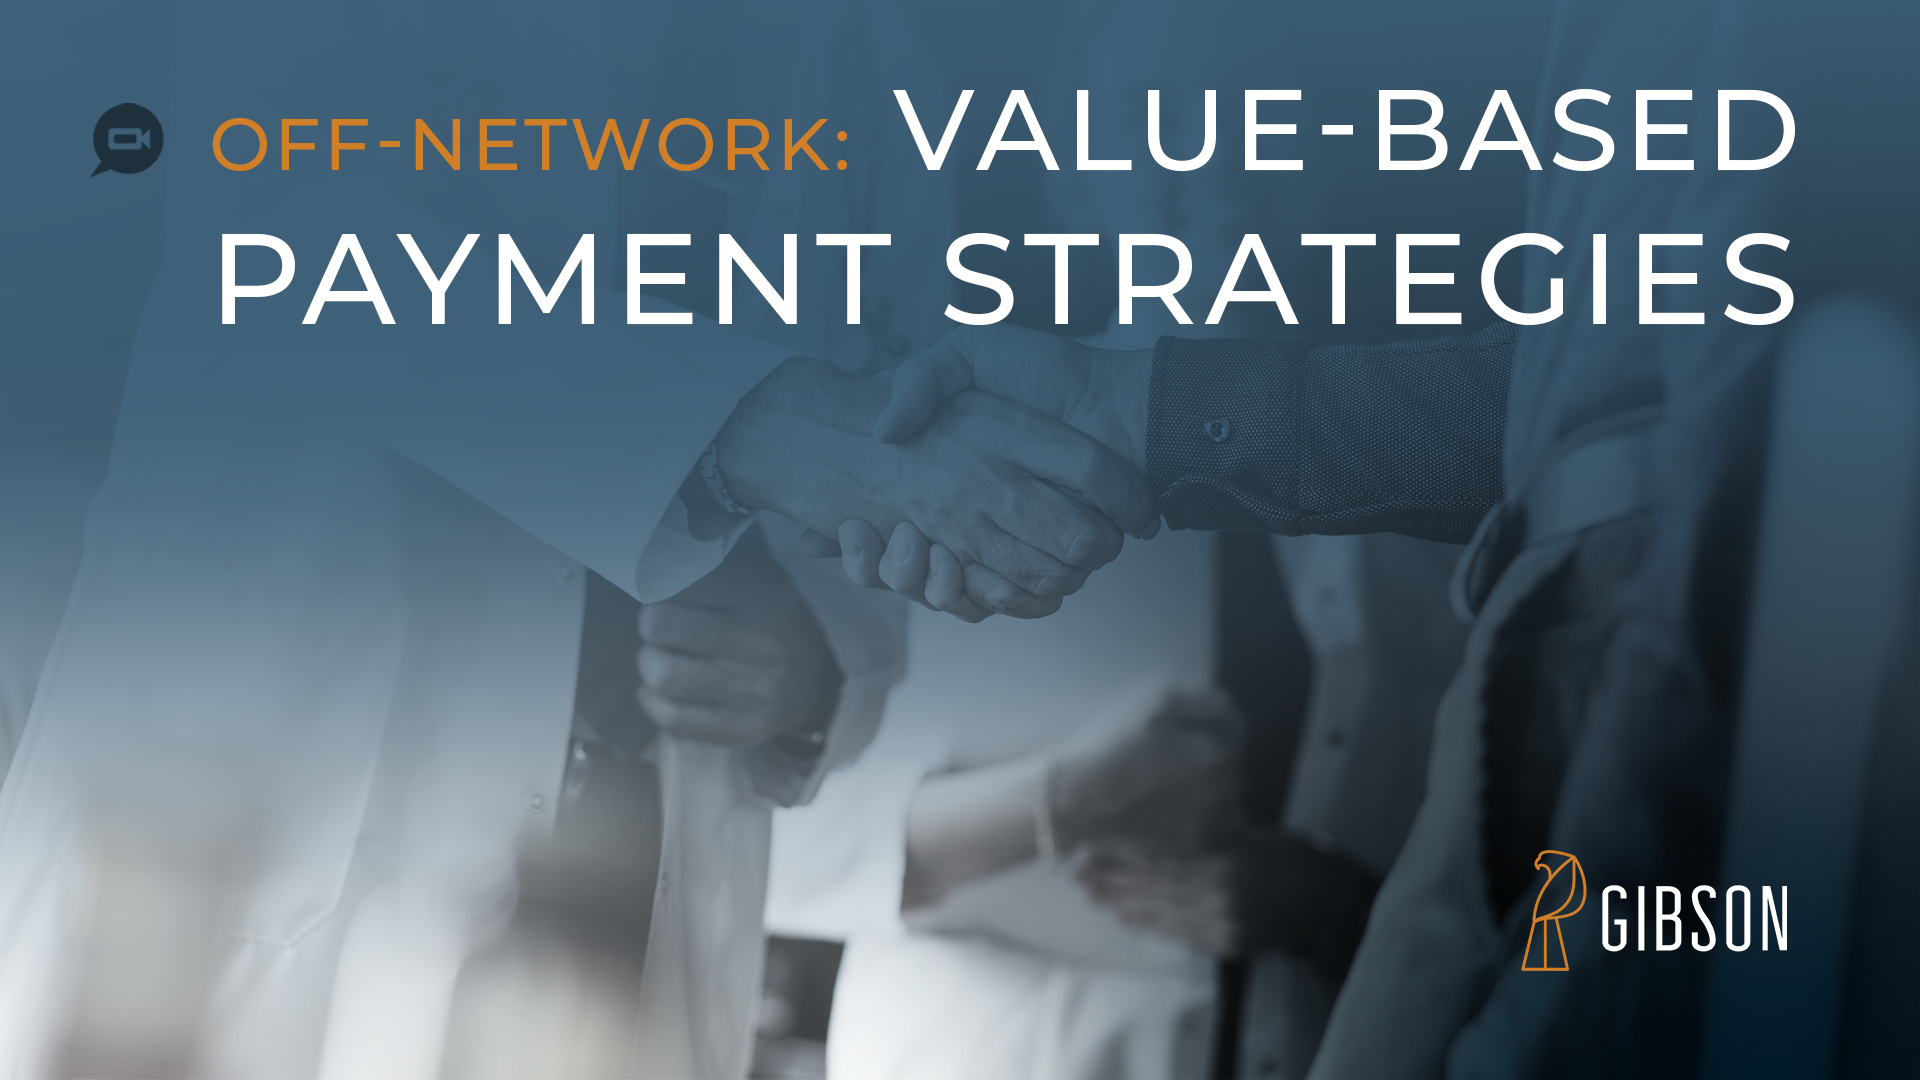 Off-Network Value-based Payment Strategies